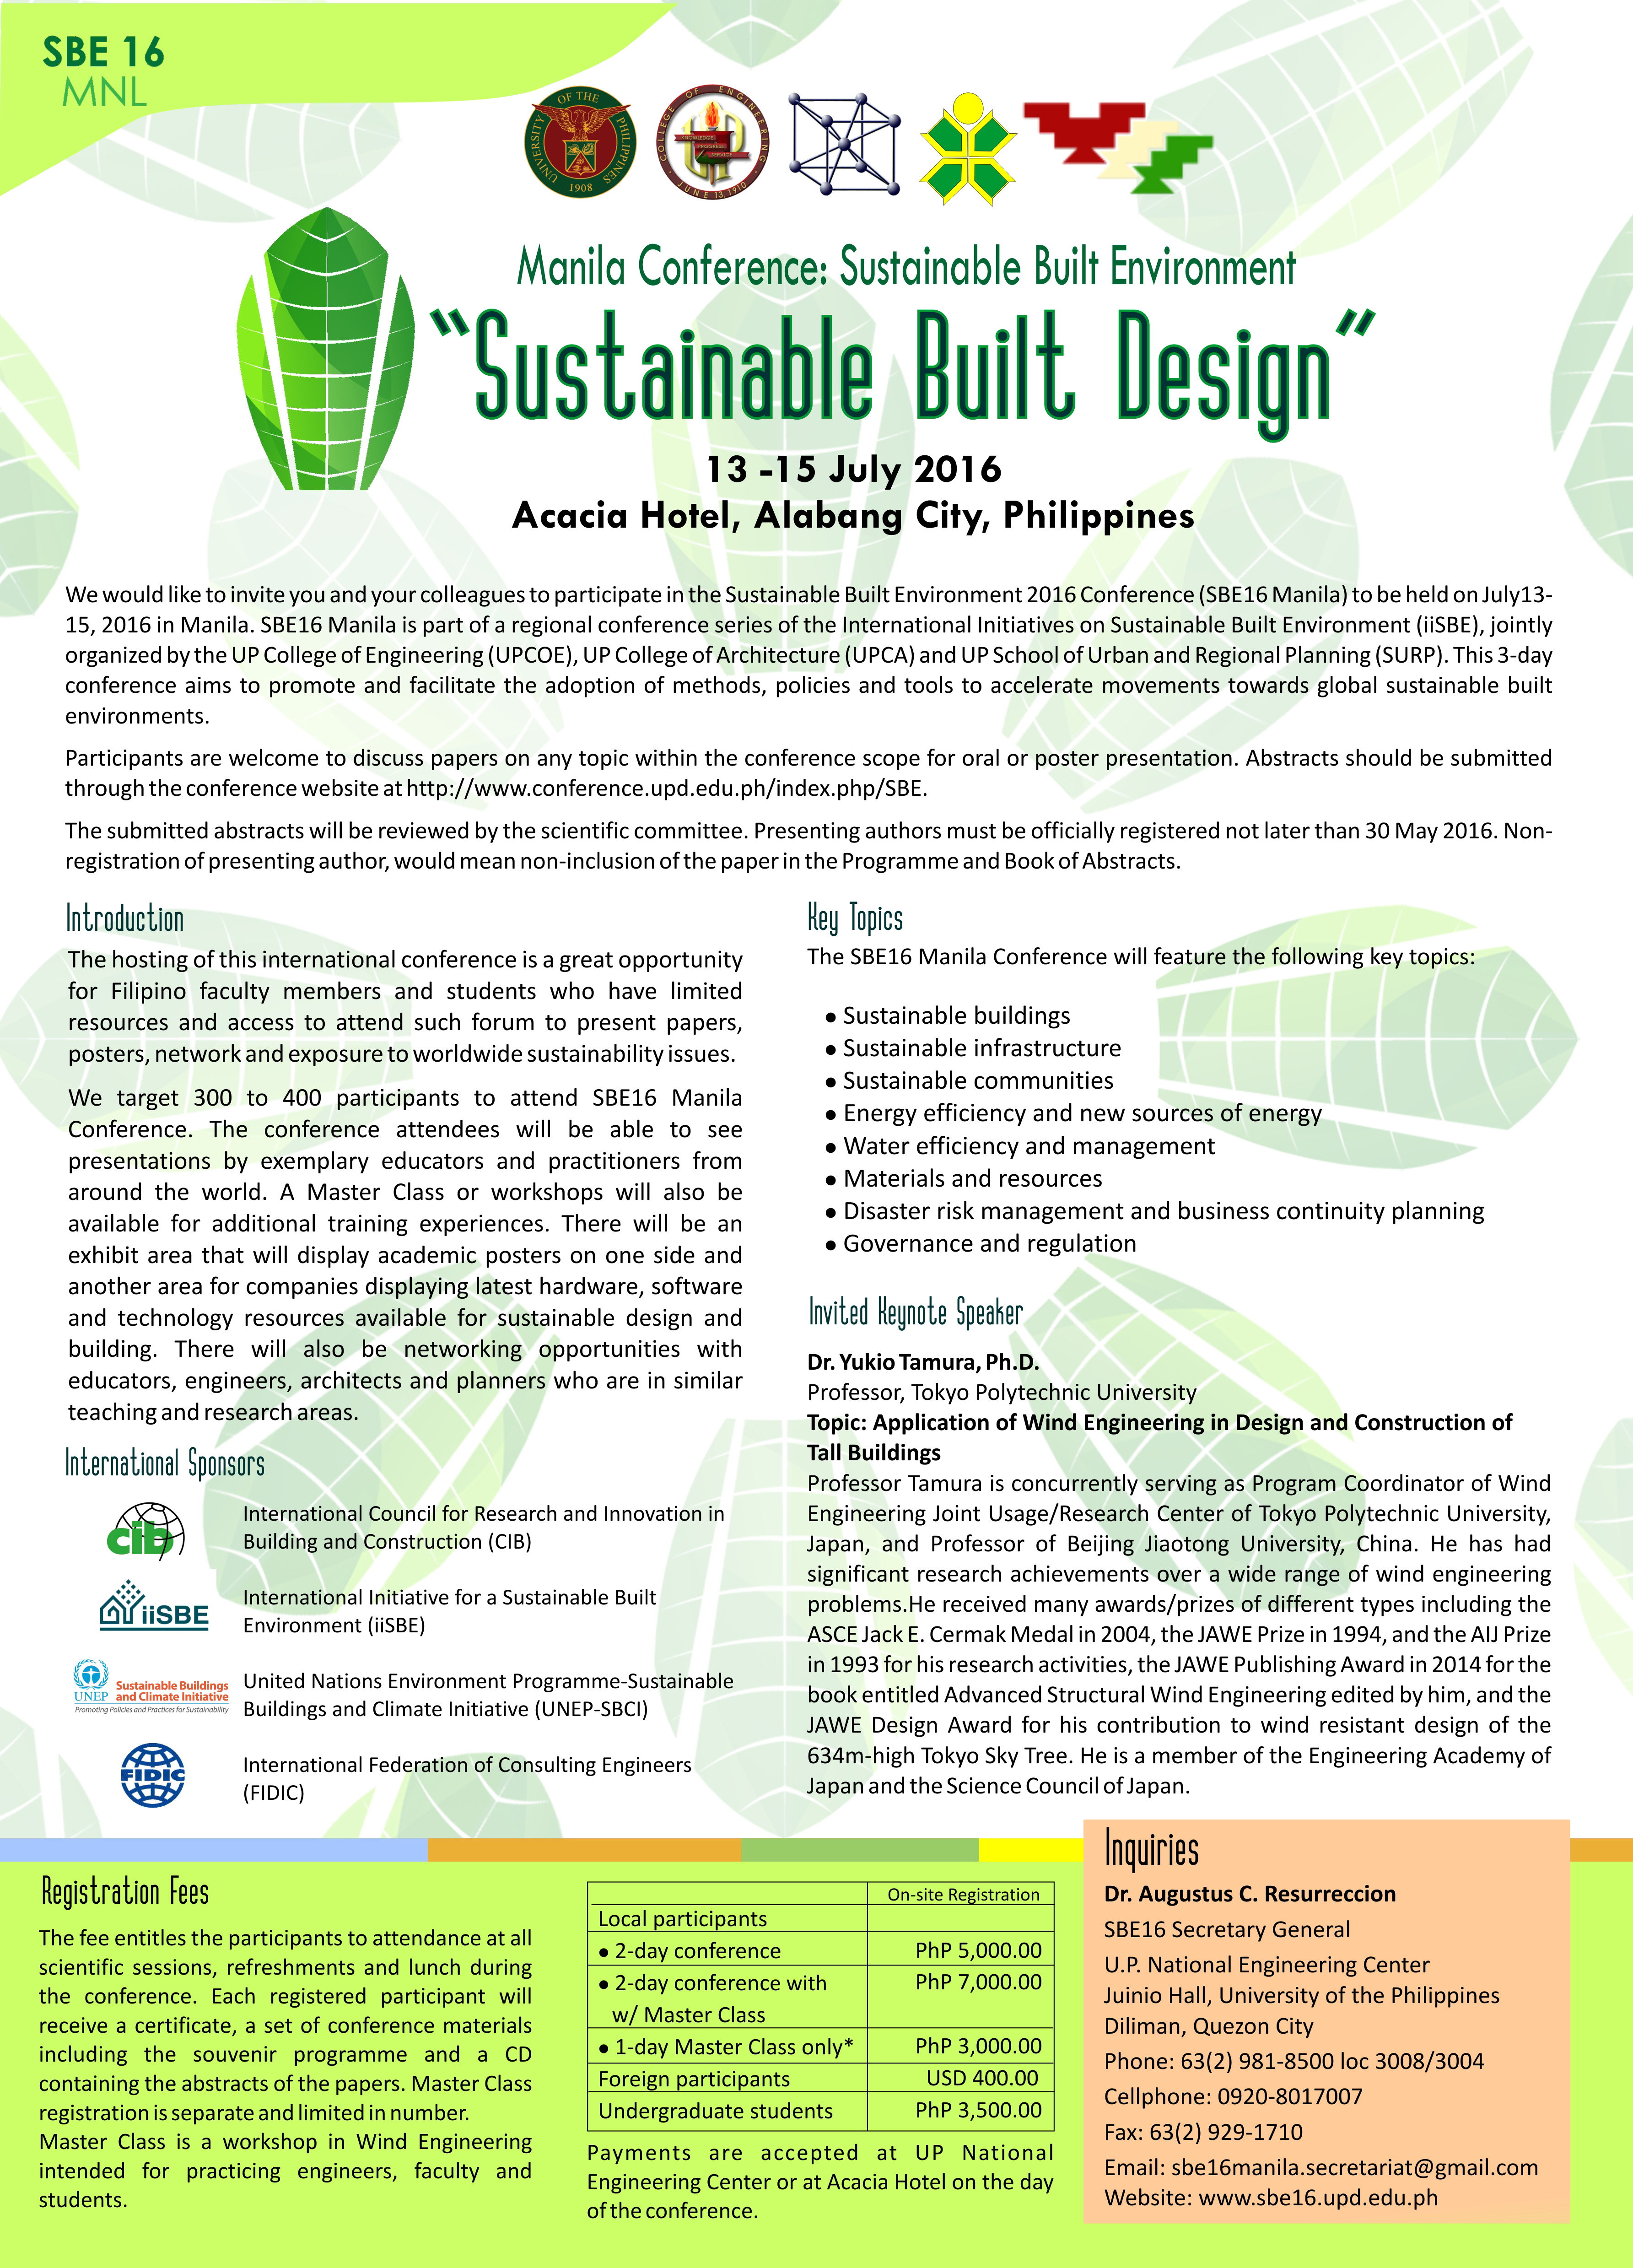 environmental sustainability research papers The effect of environmental sustainability - although it is widely known that the earth experiences cyclical climate change, there has been much evidence that human activities are negatively affecting the environment, and hence, the finite resources of the earth.